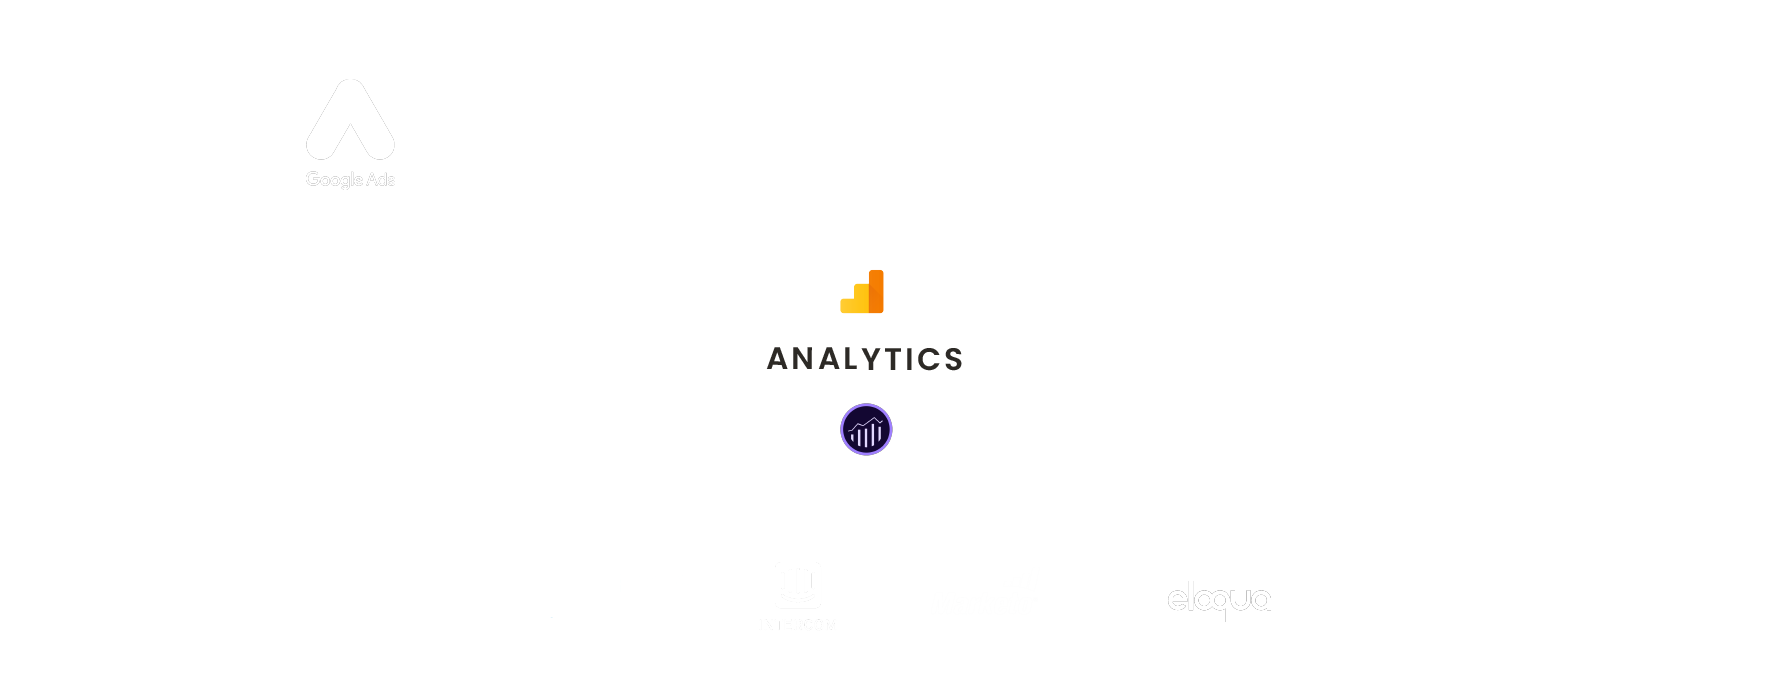 Bancroft Analytics has proven expertise working with the following platforms - Google Analytics, Adobe Analytics, Adobe Marketing Cloud, Salesforce, Google Big Query, Oracle Eloqua, Marketo, Marin Software, Foresee, Bing, Hotjar, ObservePoint, Intercom, Salesforce Pardot, Clicktale, Qualtrics, Google Ads as shown in this hub and spoke model.